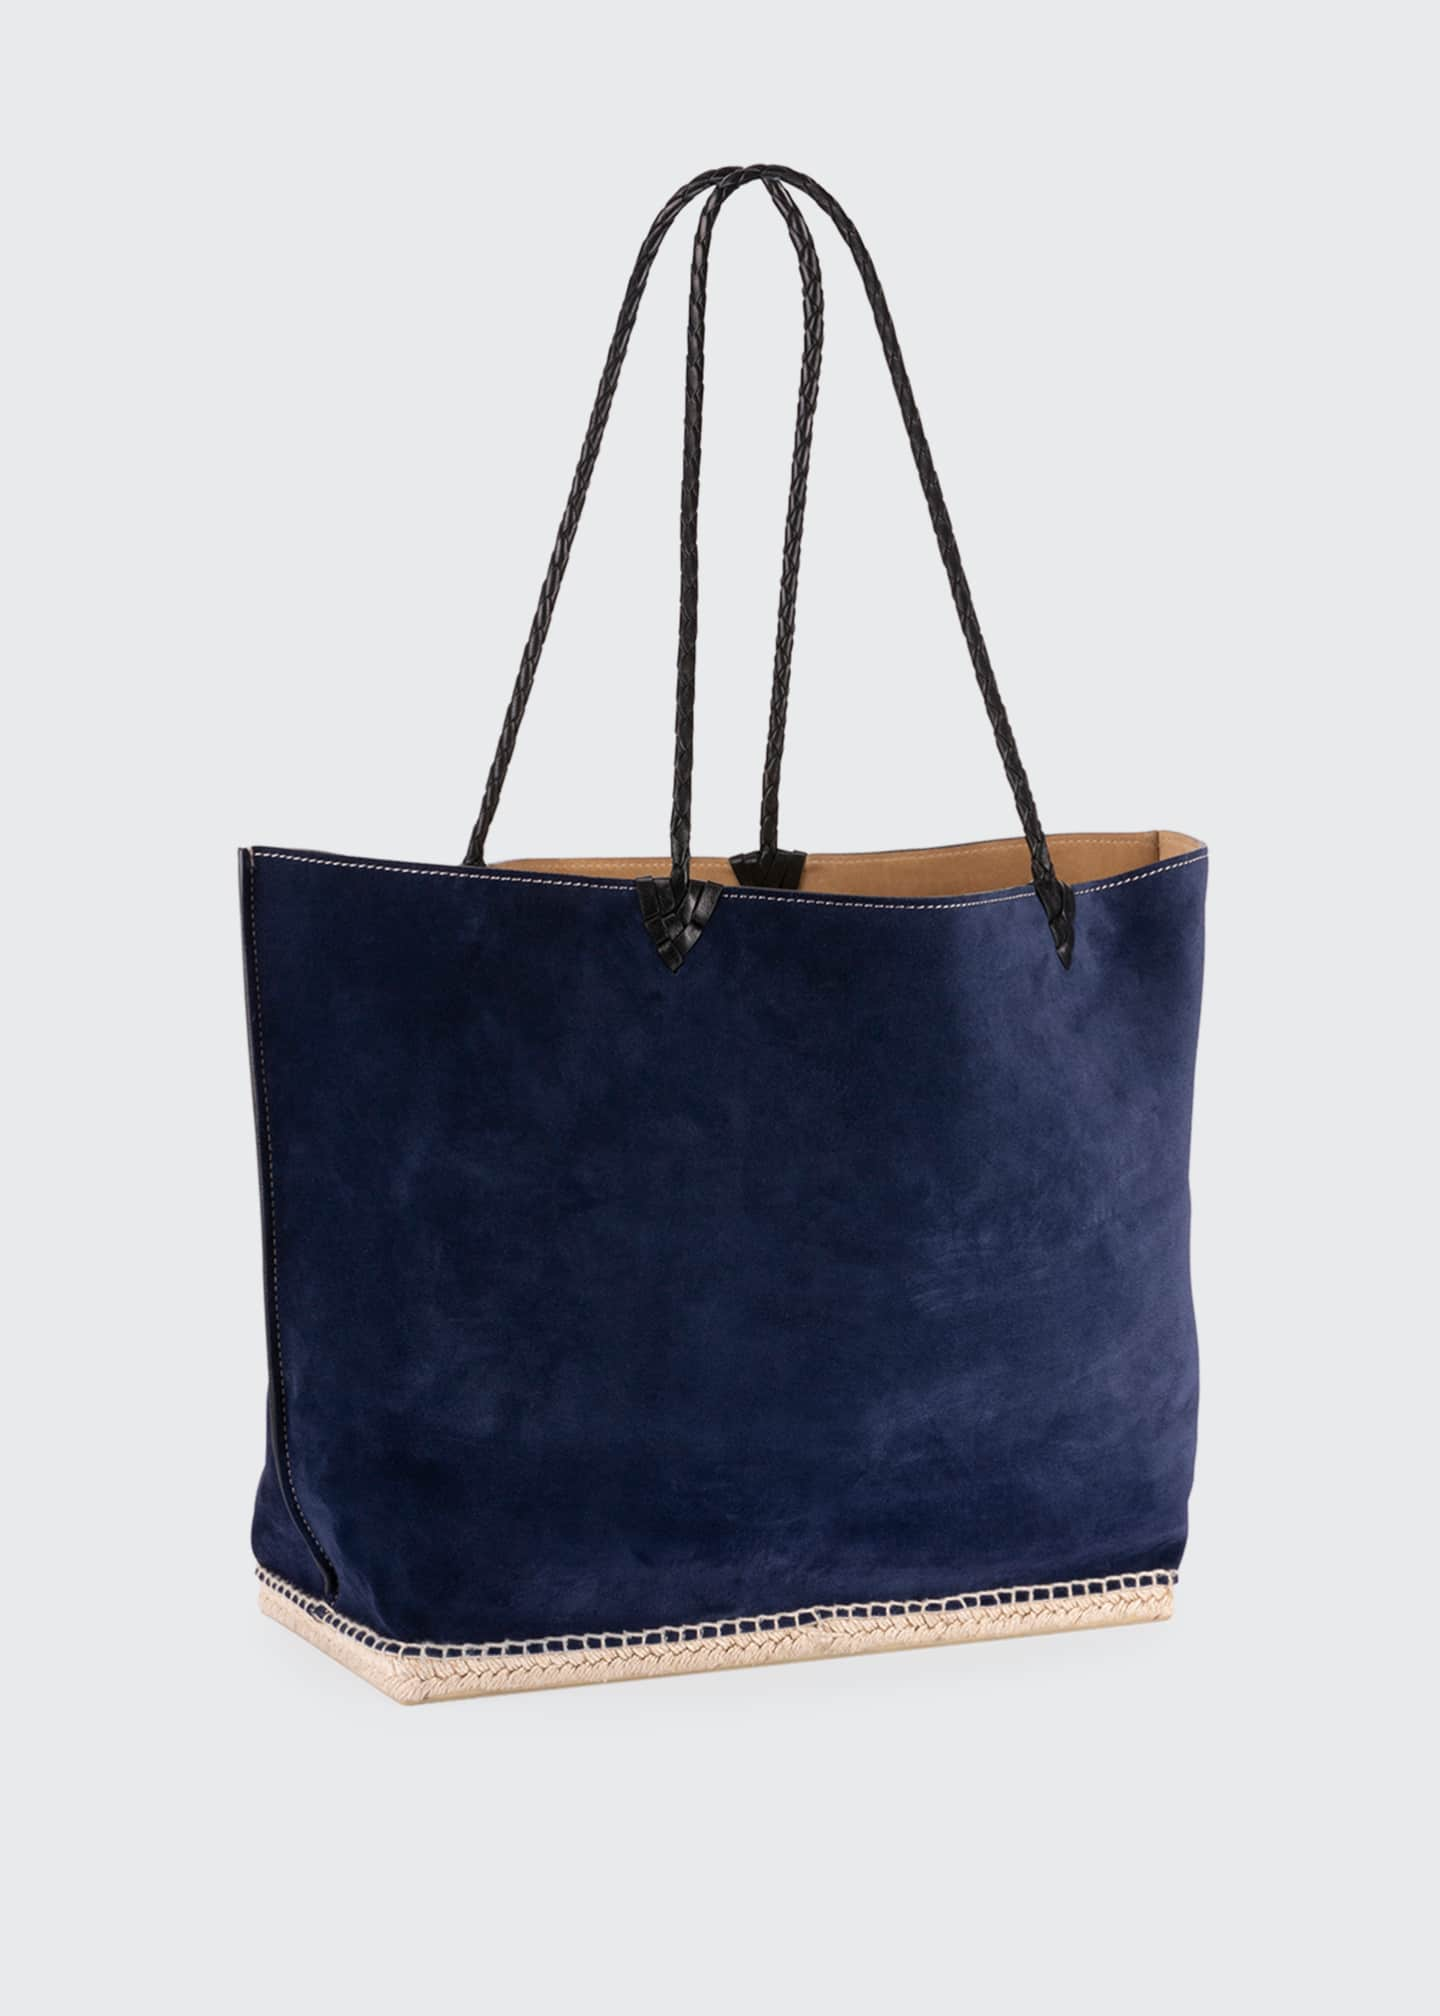 Image 4 of 6: Espadrille Large Suede Shoulder Tote Bag